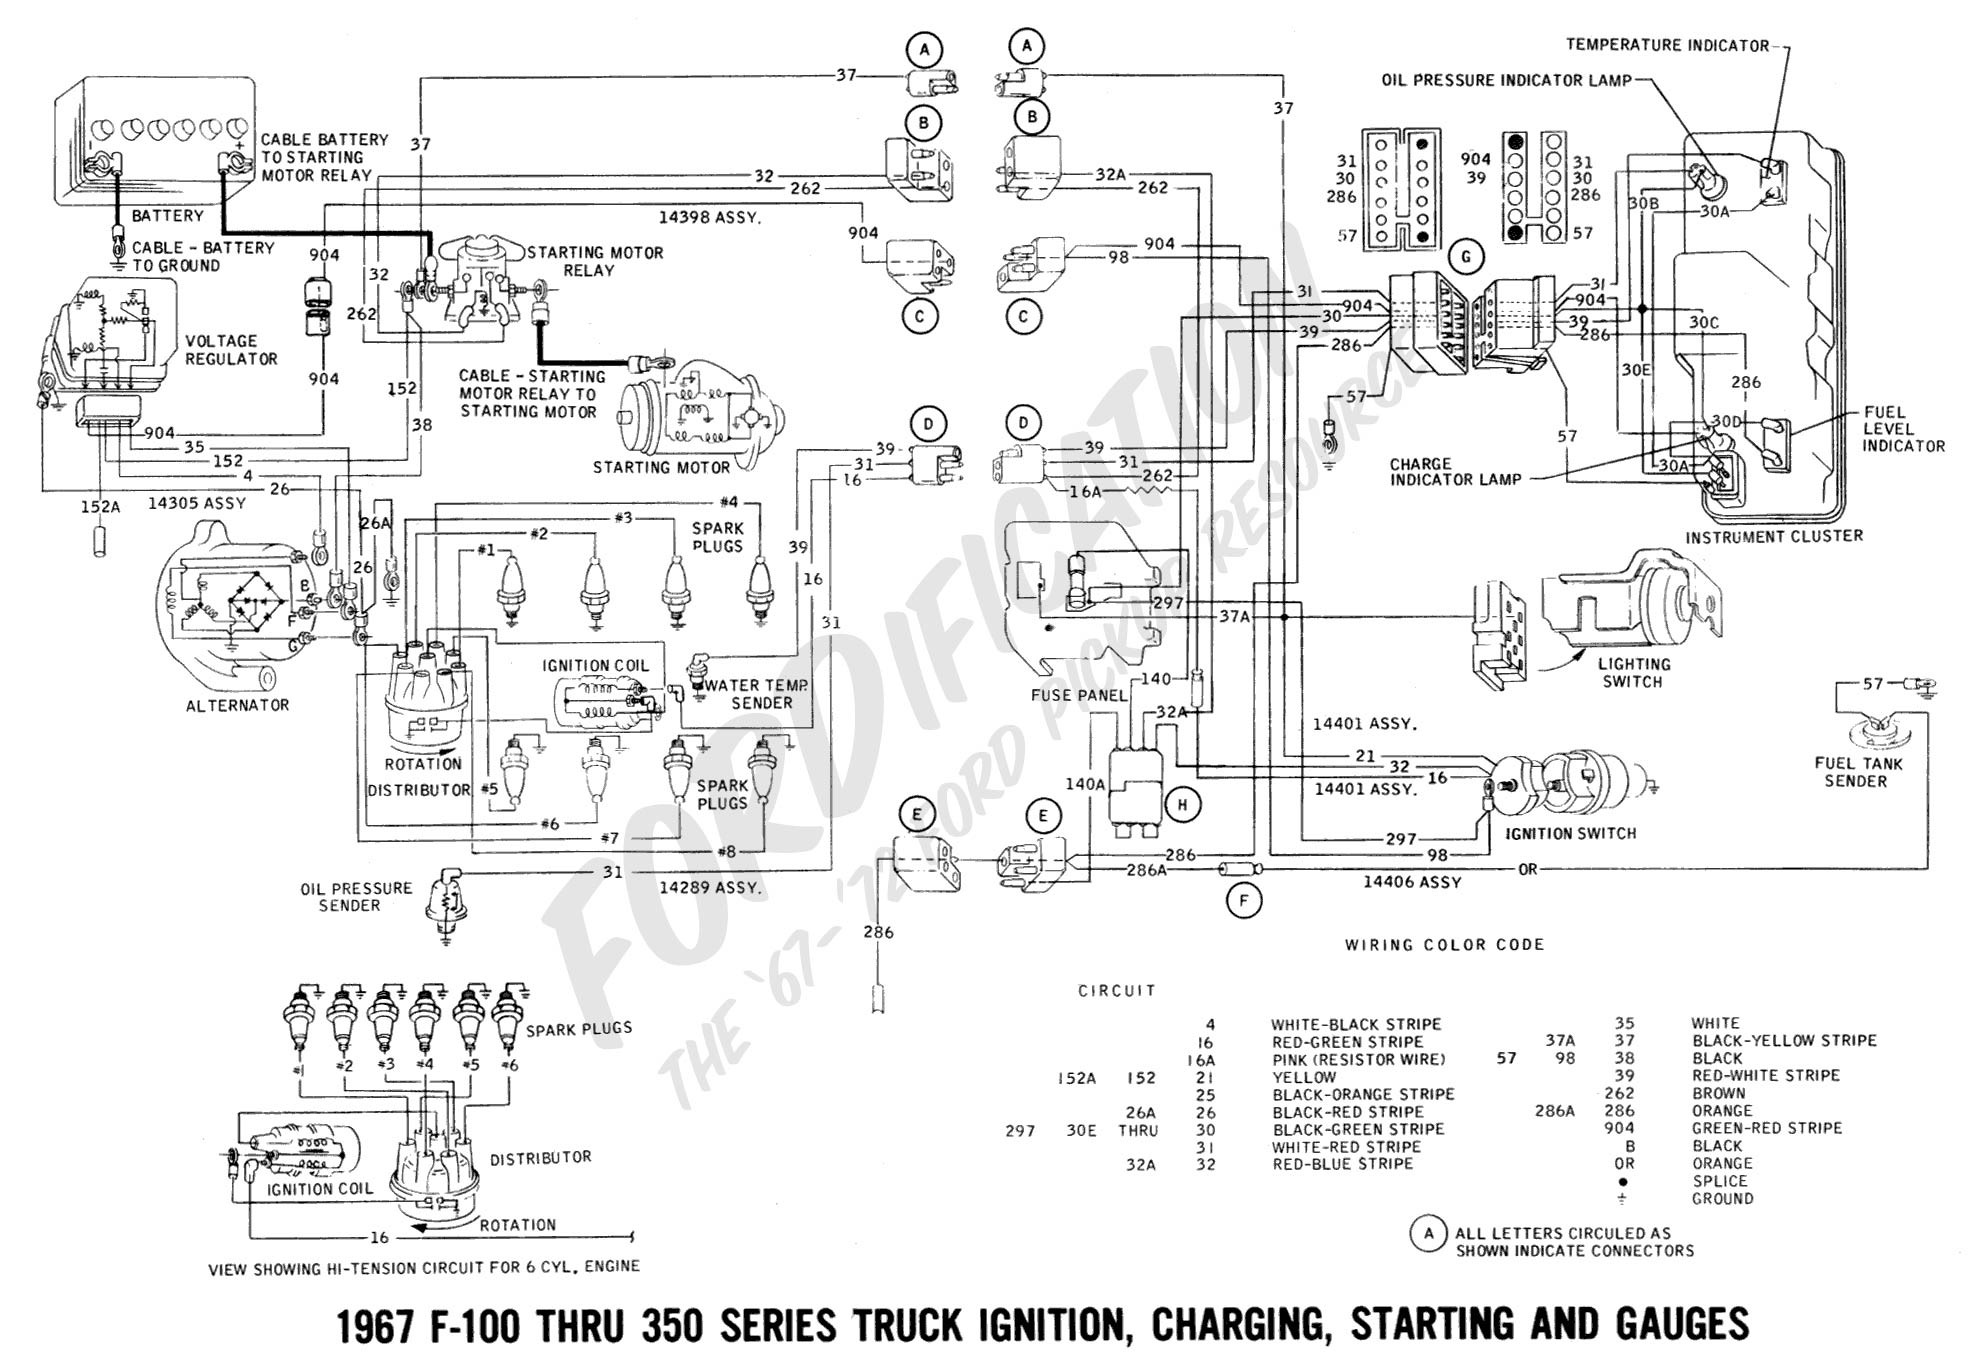 2007 ford Mustang Wiring Diagram ford Truck Technical Drawings and Schematics Section H Wiring Of 2007 ford Mustang Wiring Diagram